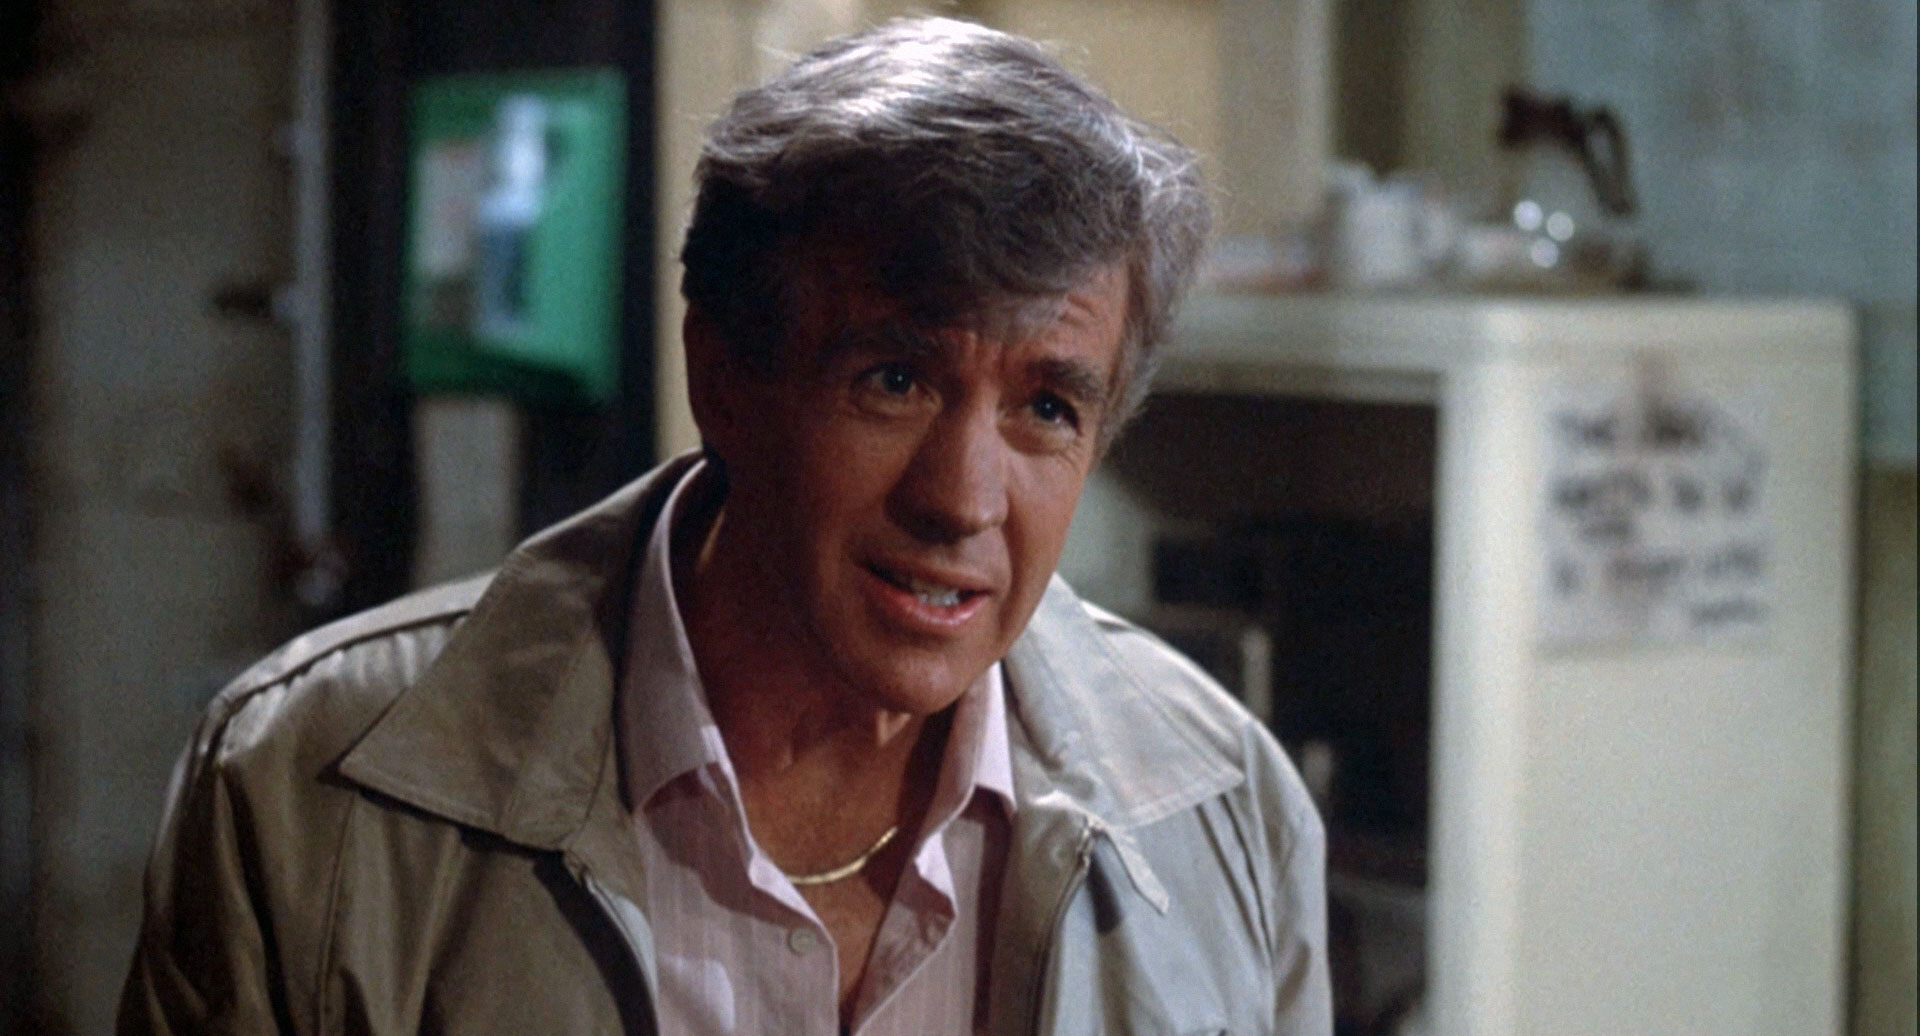 clu gulager wifeclu gulager today, clu gulager imdb, clu gulager height, clu gulager wife, clu gulager images, clu gulager last picture show, clu gulager wagon train, clu gulager pictures, clu gulager net worth, clu gulager biography, clu gulager interview, clu gulager laramie, clu gulager tv shows, clu gulager son, clu gulager alfred hitchcock, clu gulager photos, clu gulager bonanza, clu gulager tv series, clu gulager acting workshop, clu gulager north and south